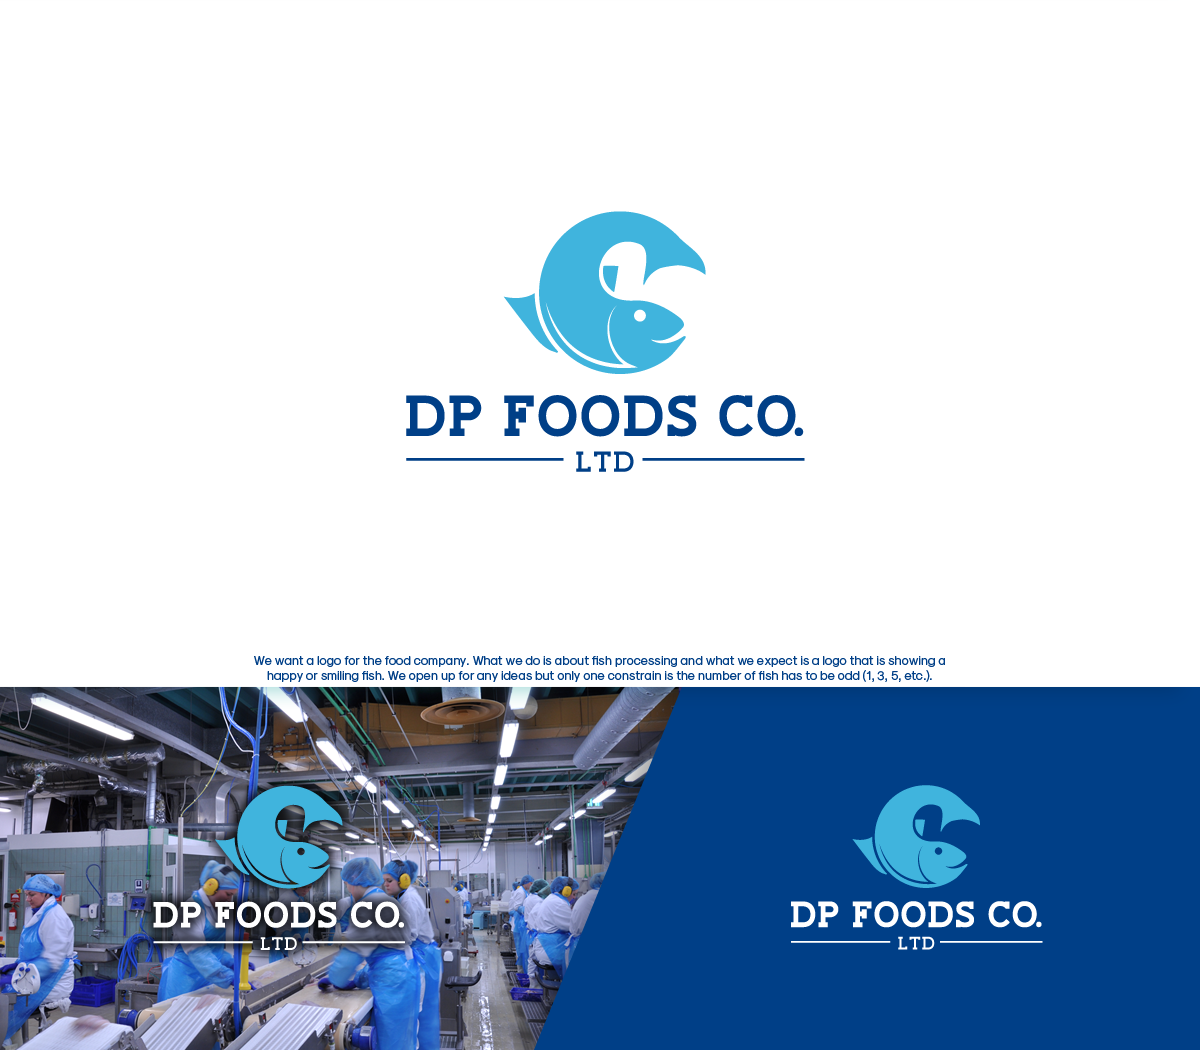 Professional Elegant It Company Logo Design For Dp Foods Co Ltd